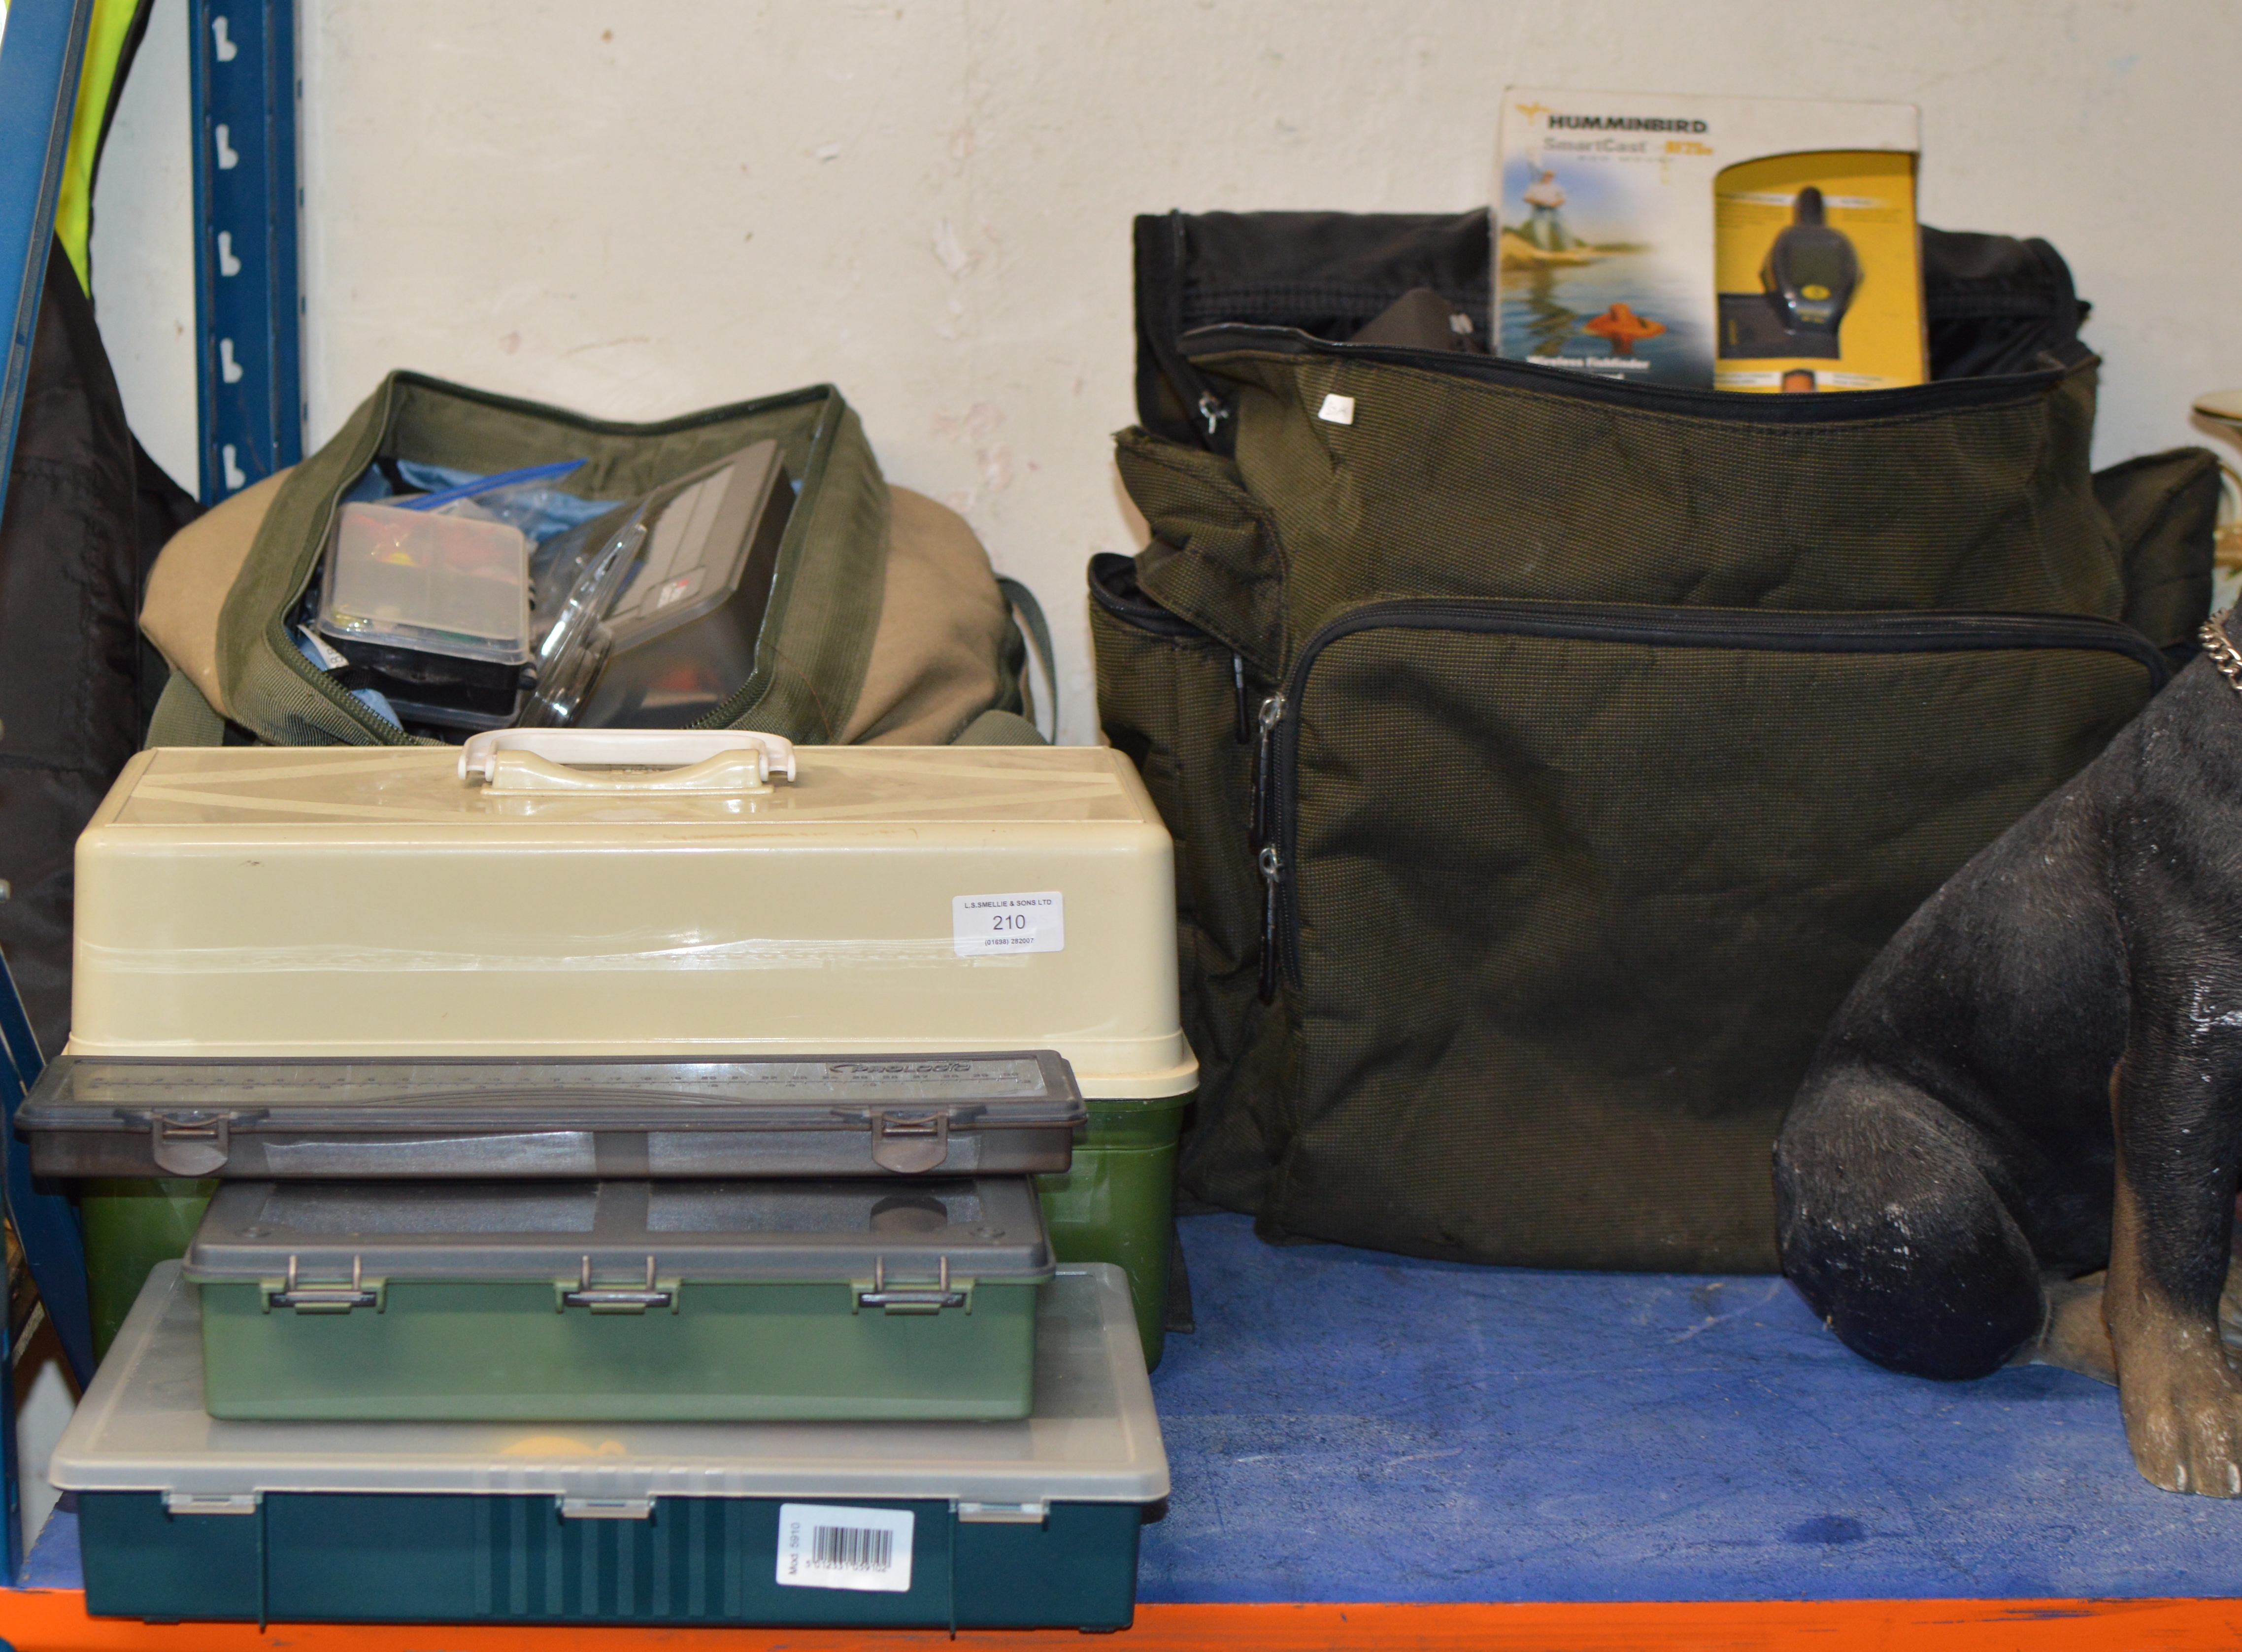 LARGE QUANTITY OF ASSORTED FISHING TACKLE OVER VARIOUS BAGS & TACKLE BOXES, FLOATS, LURES, BITE